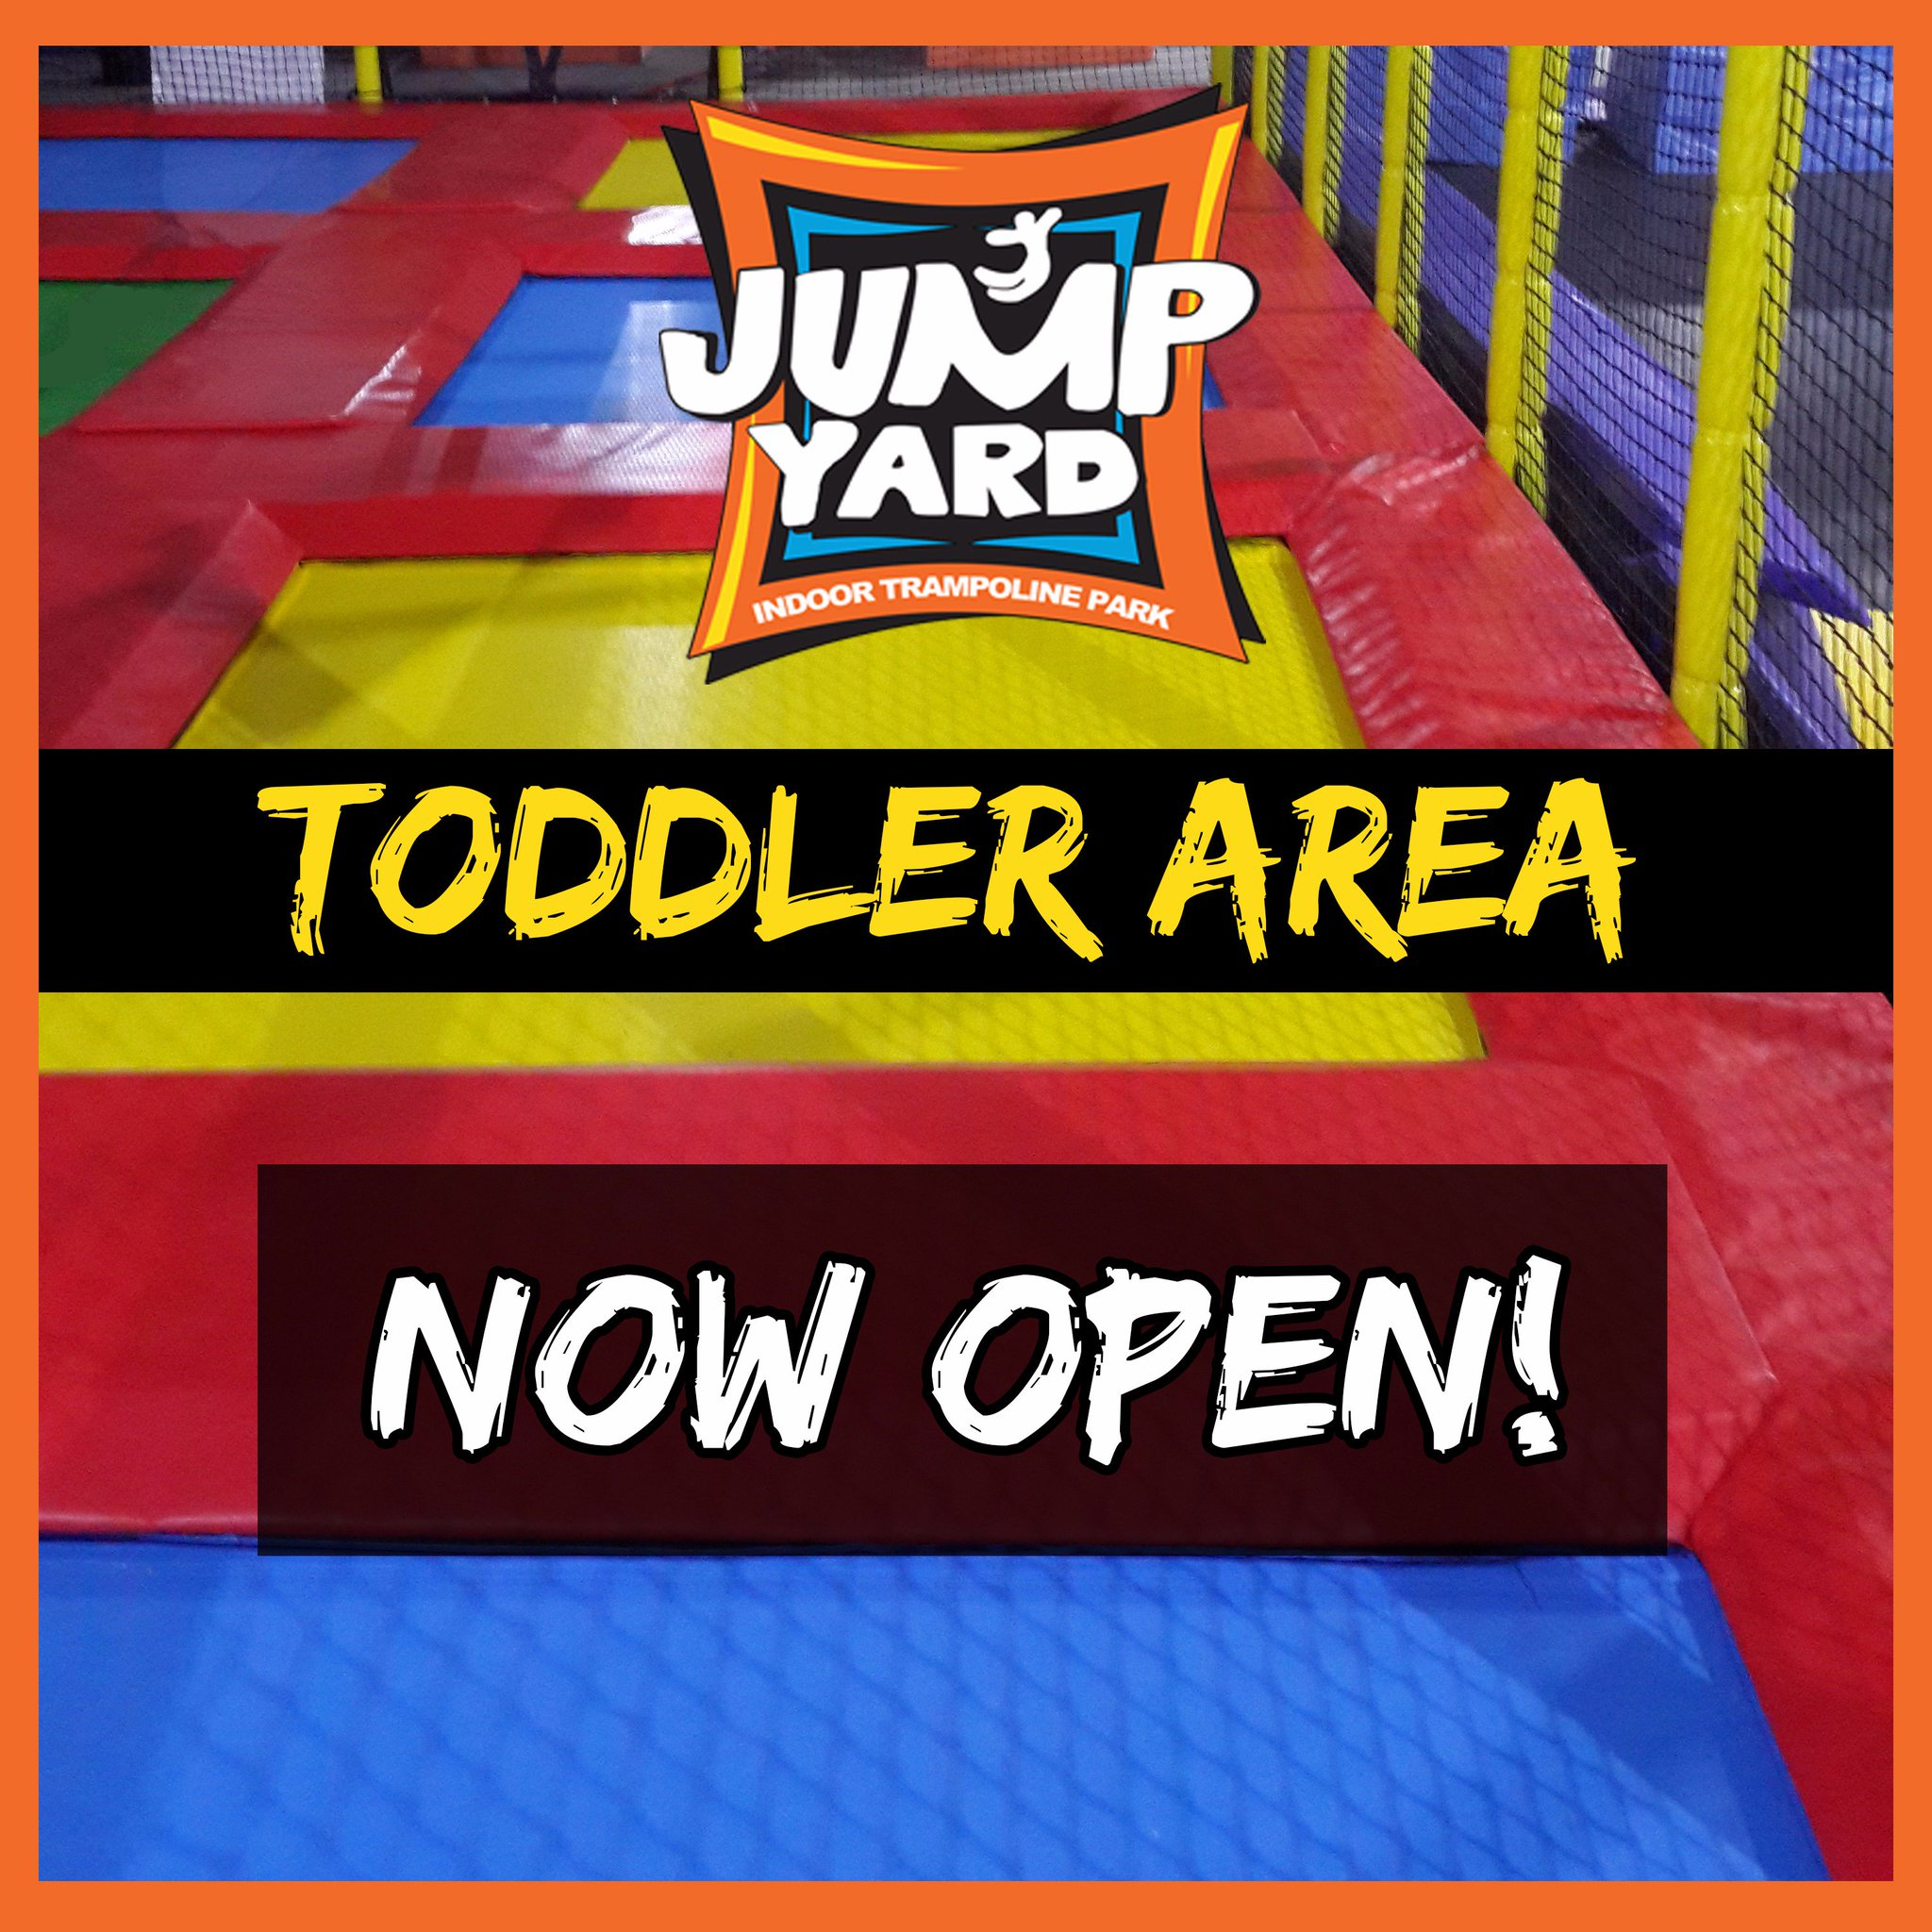 Jump Yard On Twitter Here S Some Good News For Our Lil Jumpers Our Toddler Area Is Now Open Jumpyard Trampolinepark Toddler